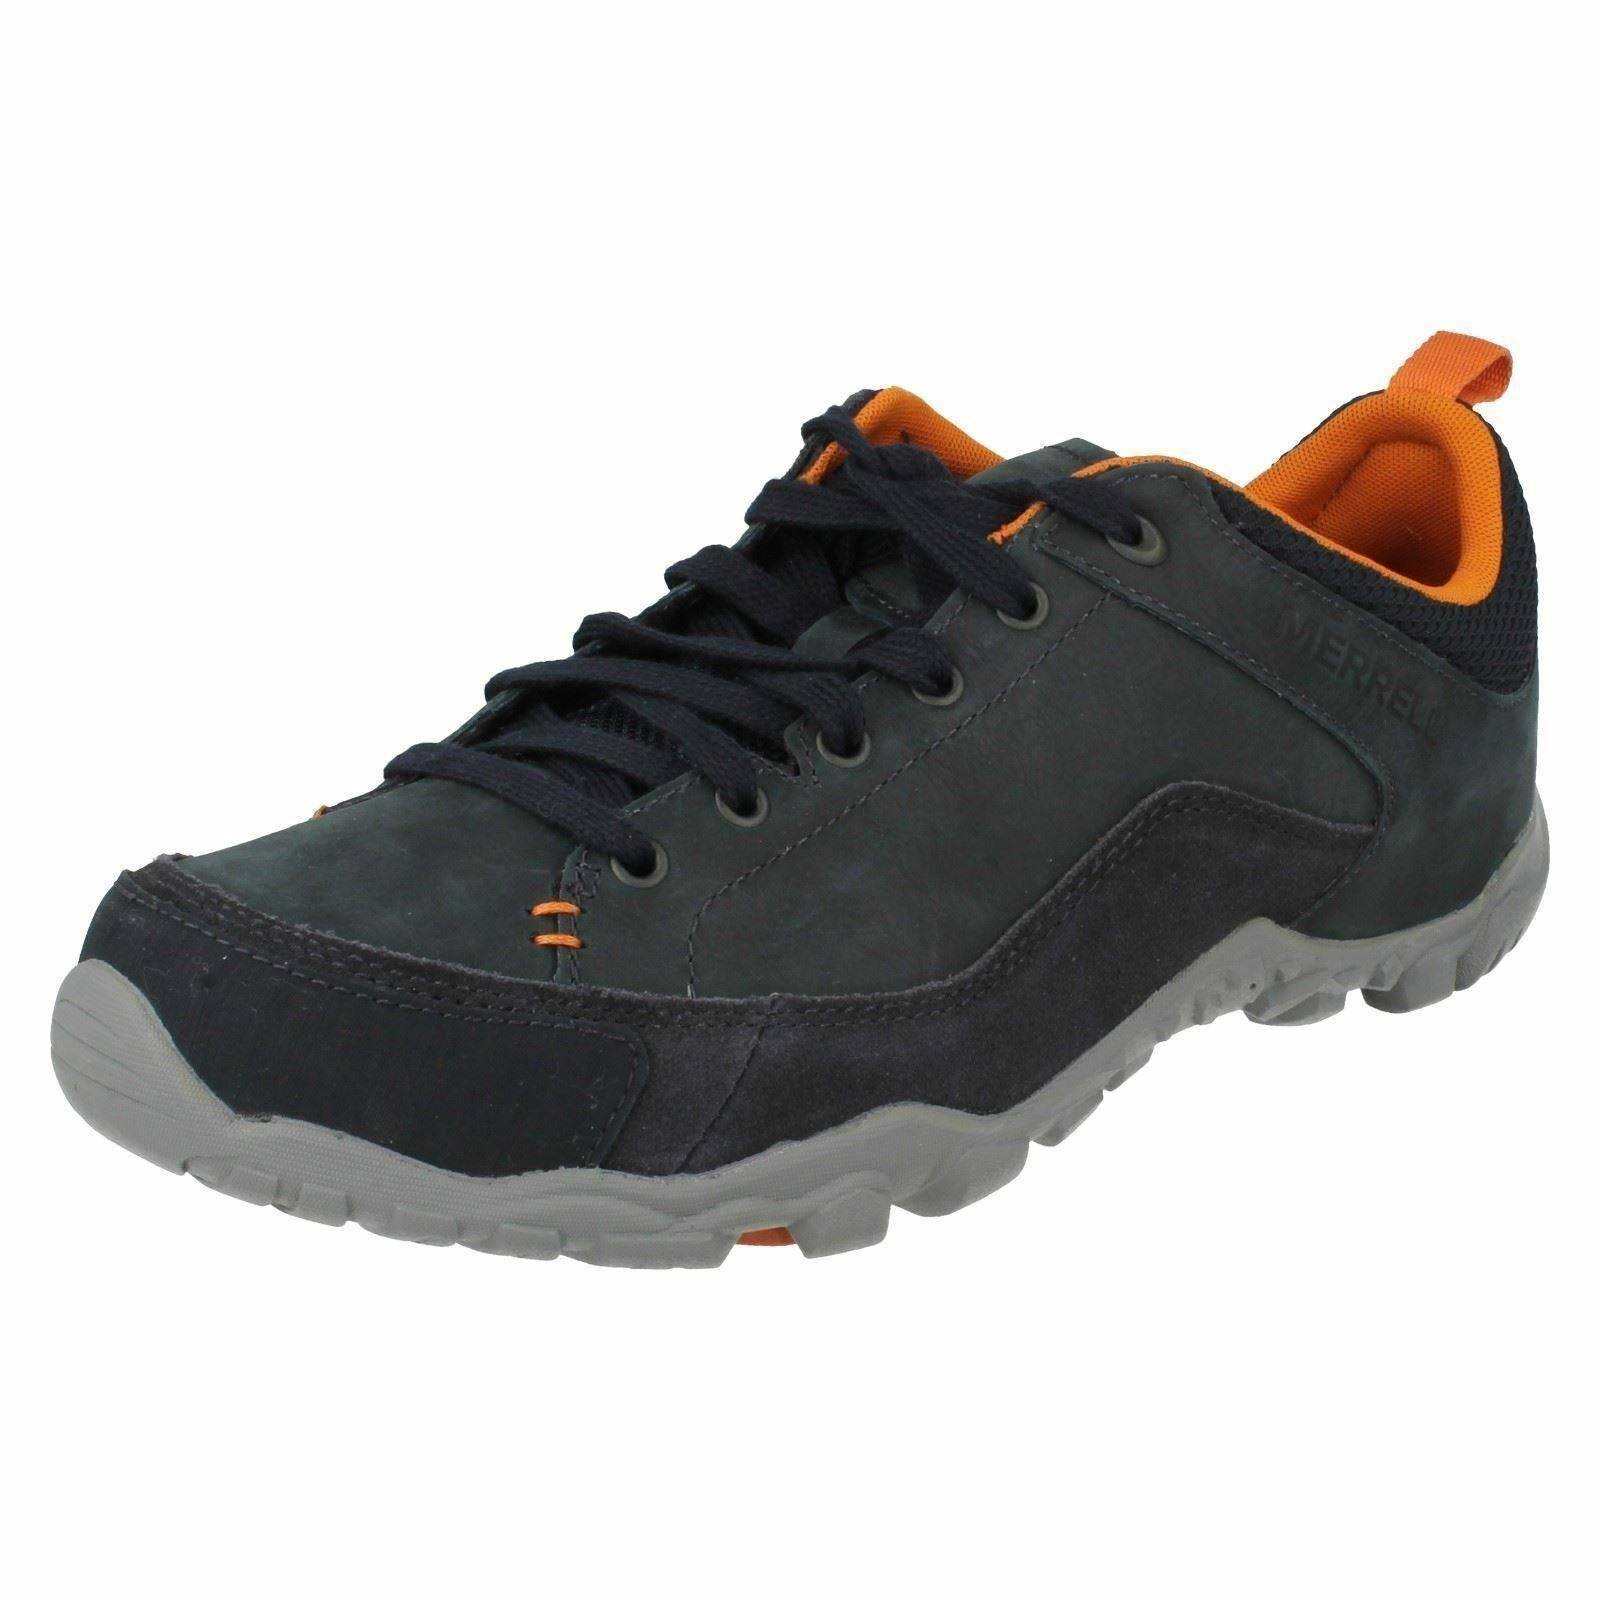 Mens Merrell Walking Shoes - Telluride Lace